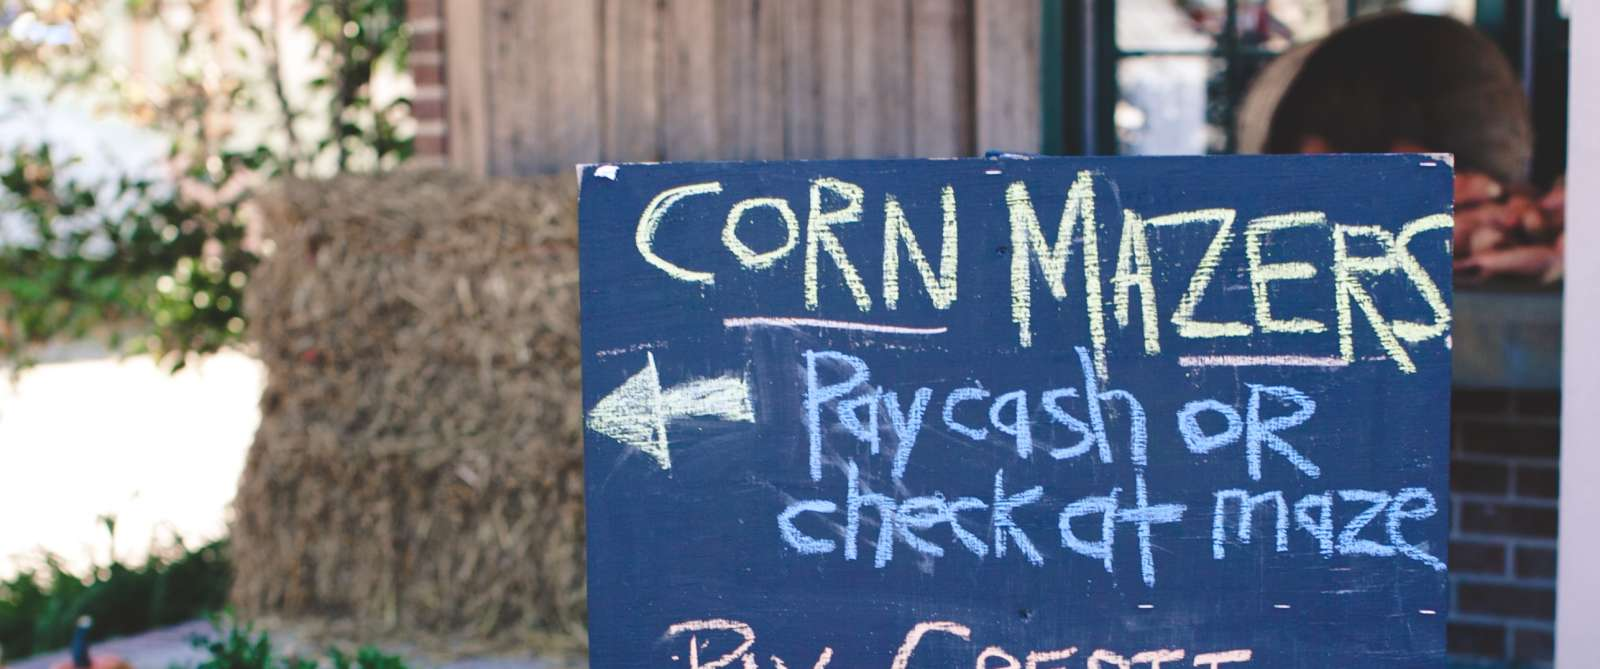 Copy of corn maze 2